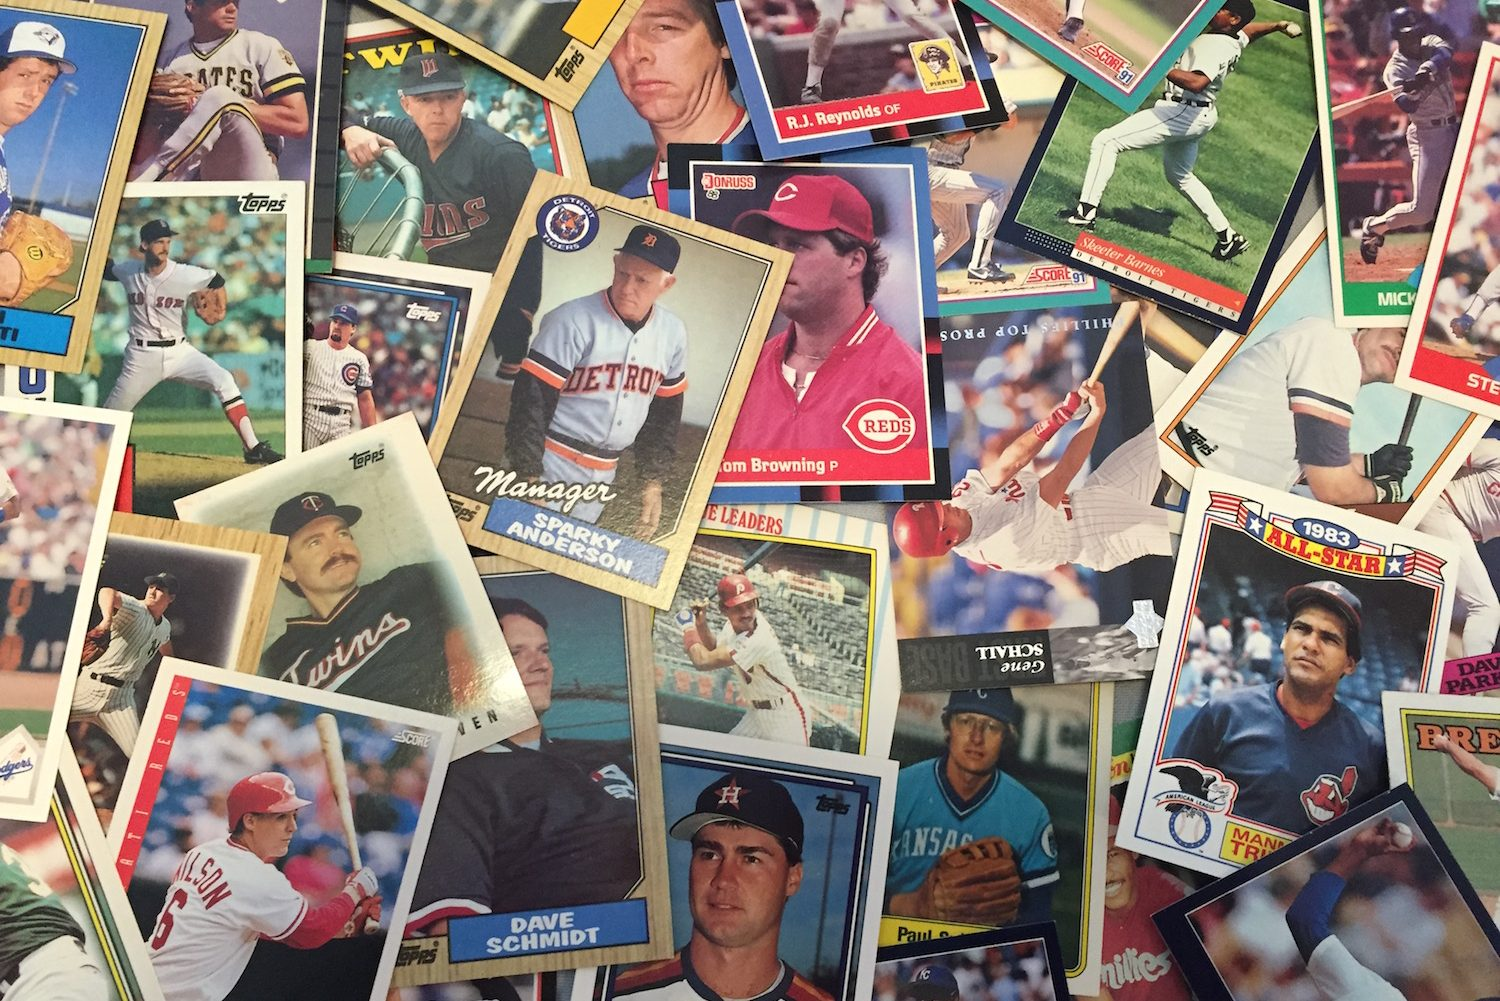 the baseball card has gone through many changes over some time. this is a history of what has changed.